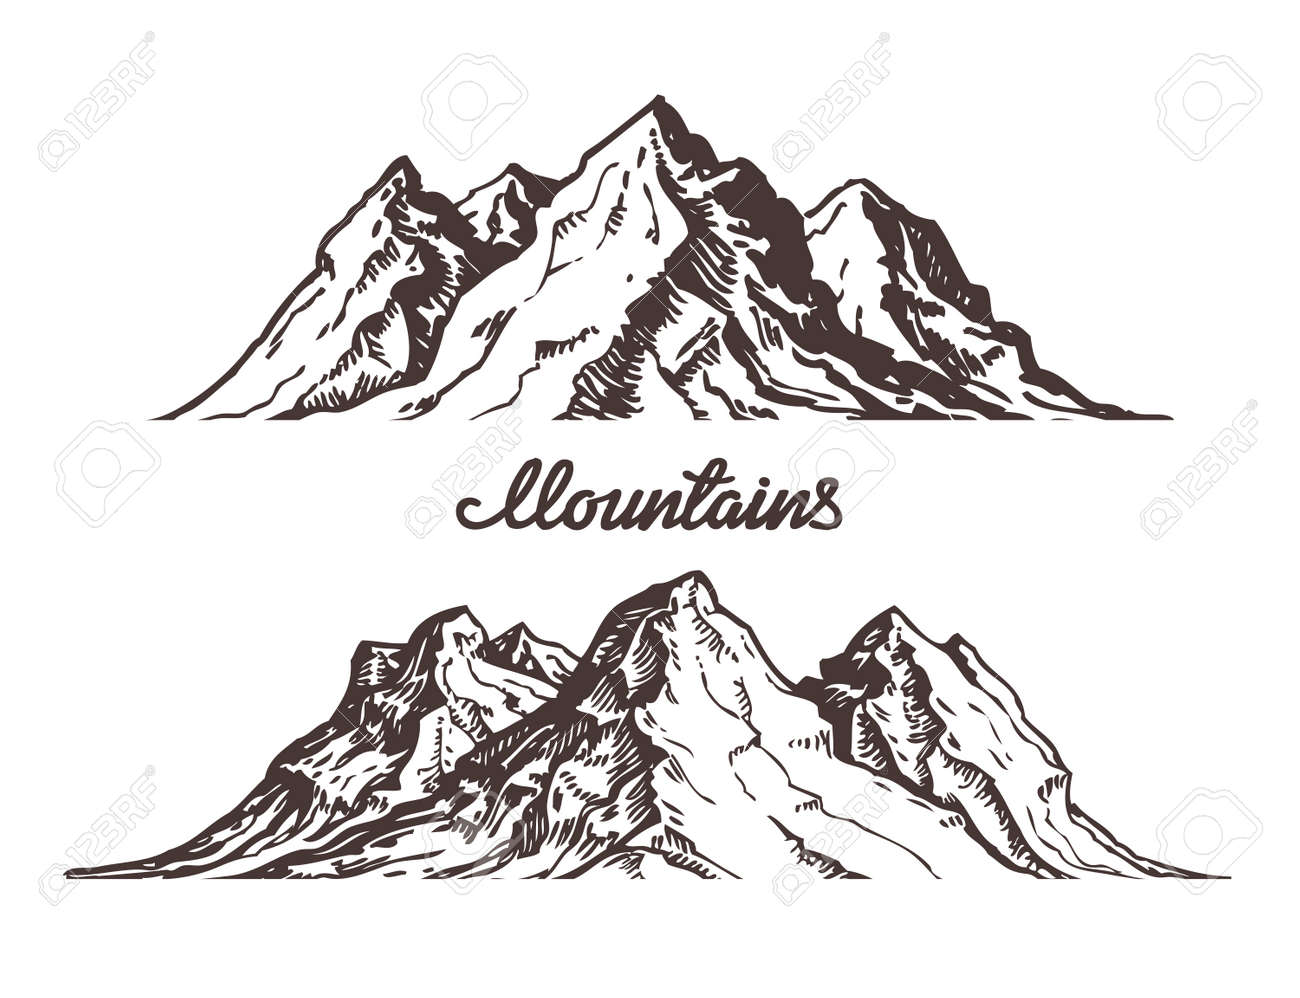 Mountains sketch. Hand drawn vector illustration isolated on white background - 67209486